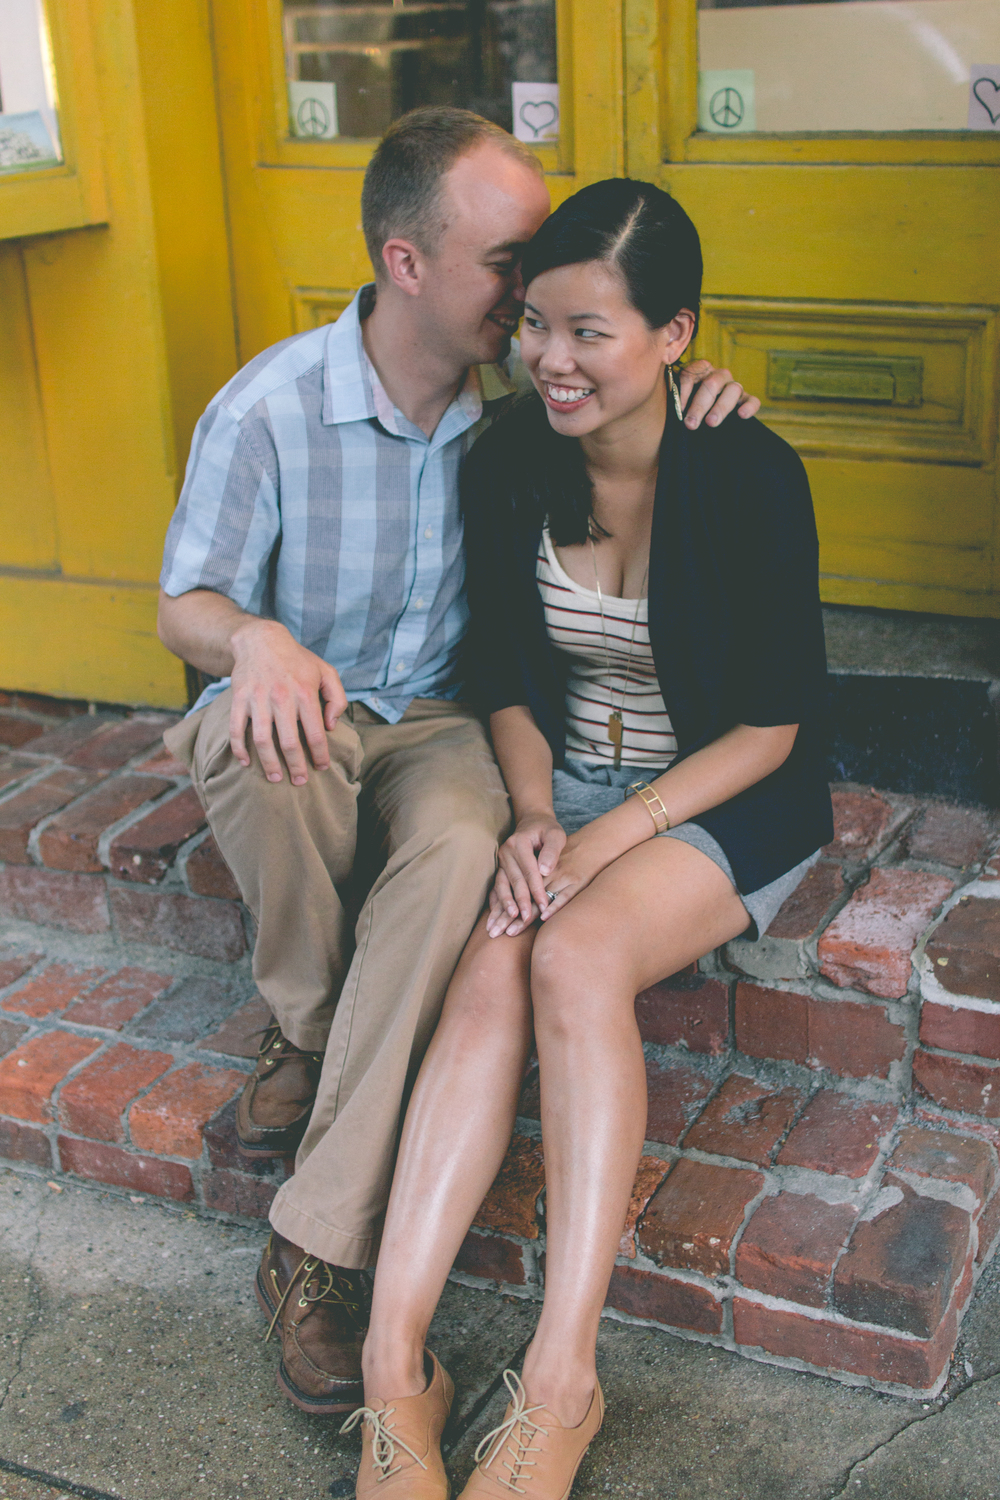 Cute-Downtown-Maryland-Engagement.jpg